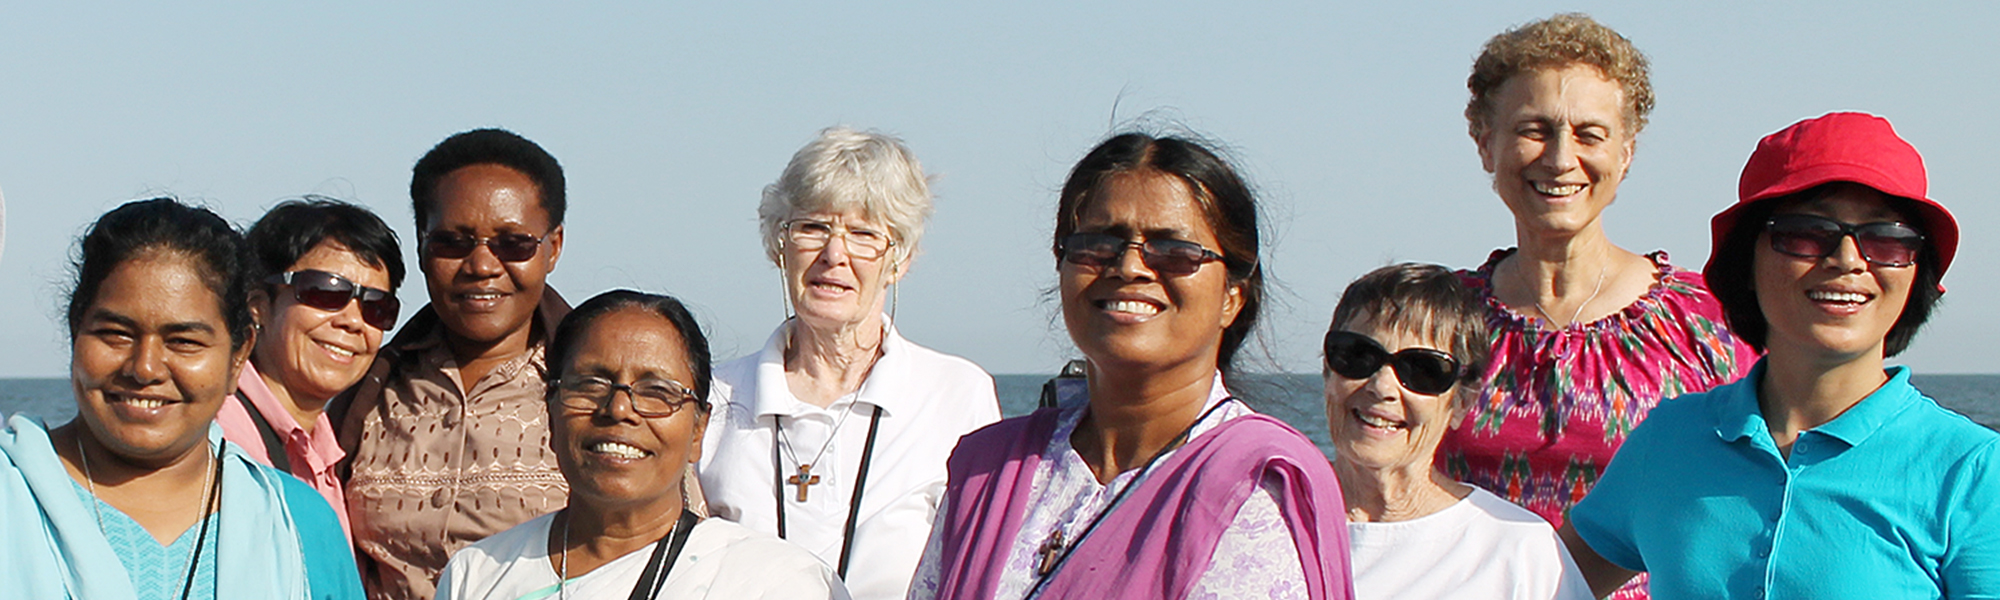 Sisters of the Holy Cross in Uganda, 2014